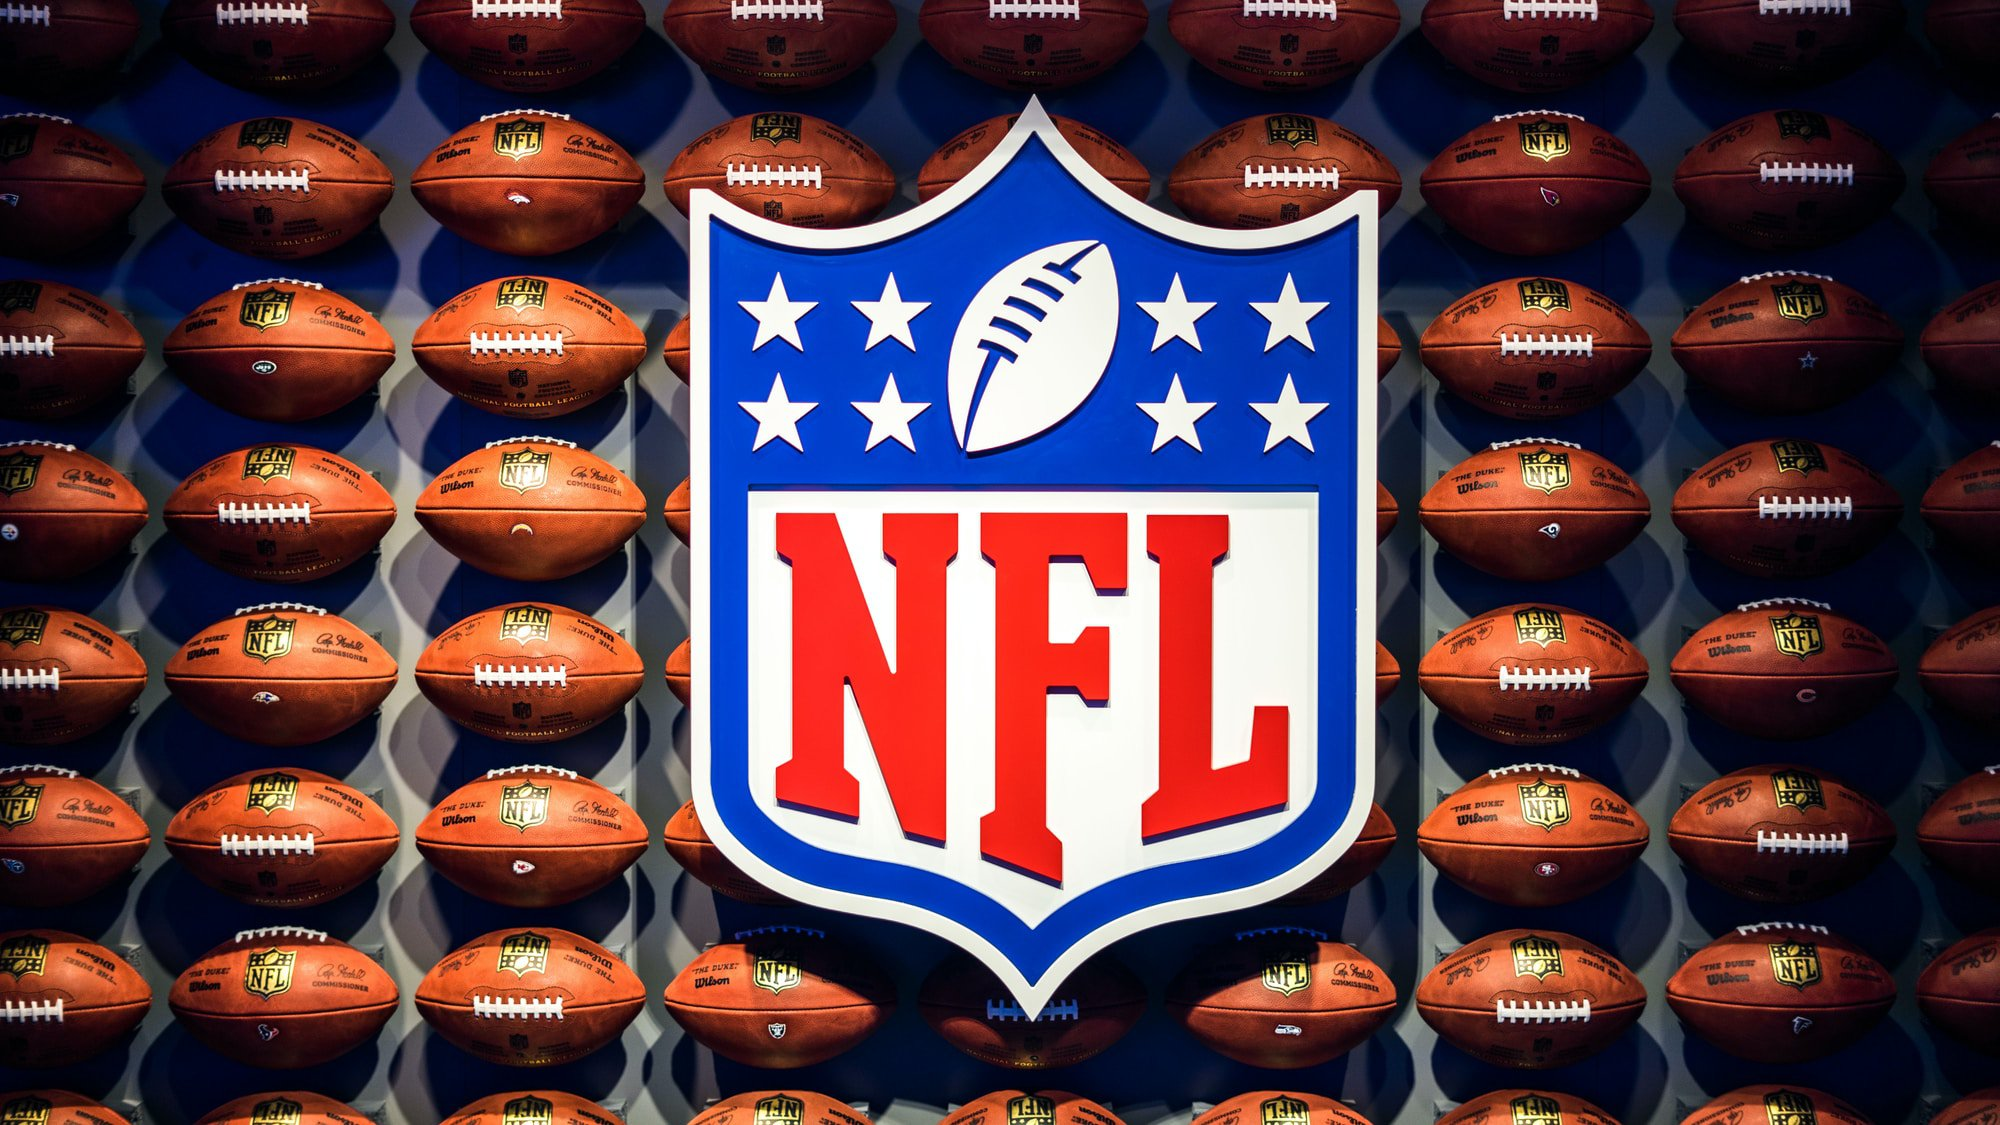 Thursday Night Football: Panthers vs Texans Odds & Preview